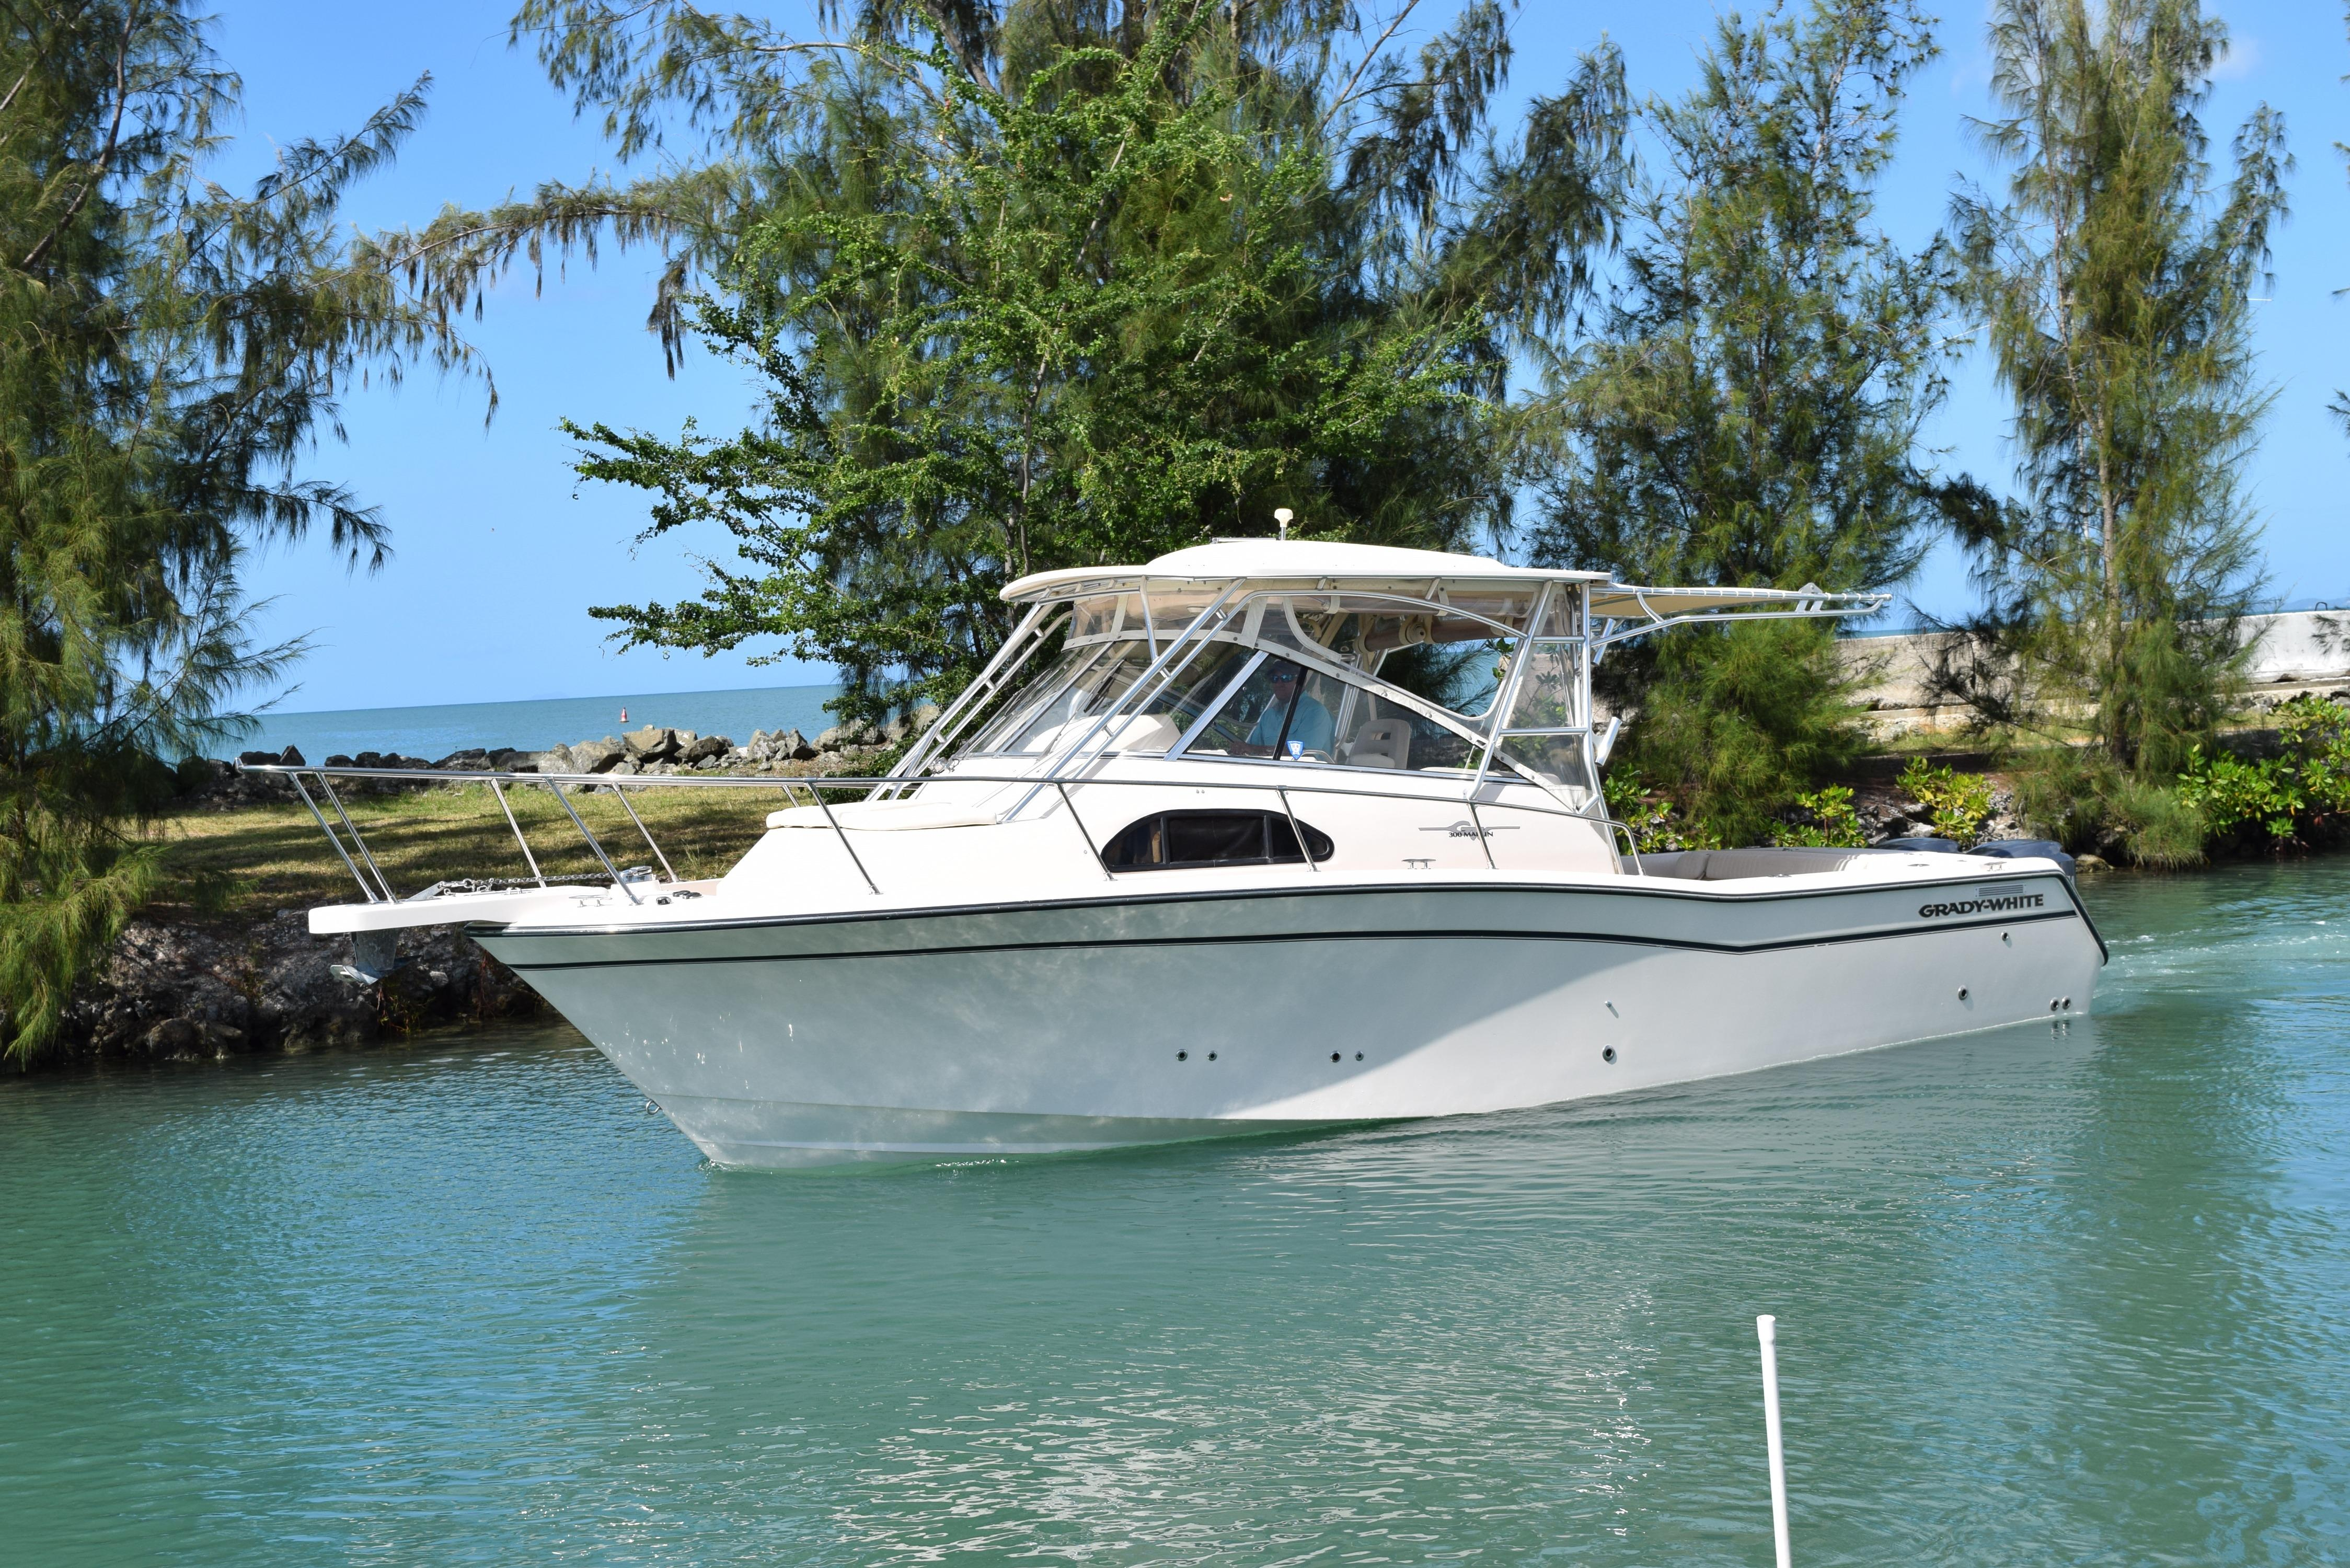 Grady White Boat Wiring Diagram Diagrams 2008 Club Car 30 Inseanity Cabo Rojo Puerto Rico Sold On 2018 03 Construction